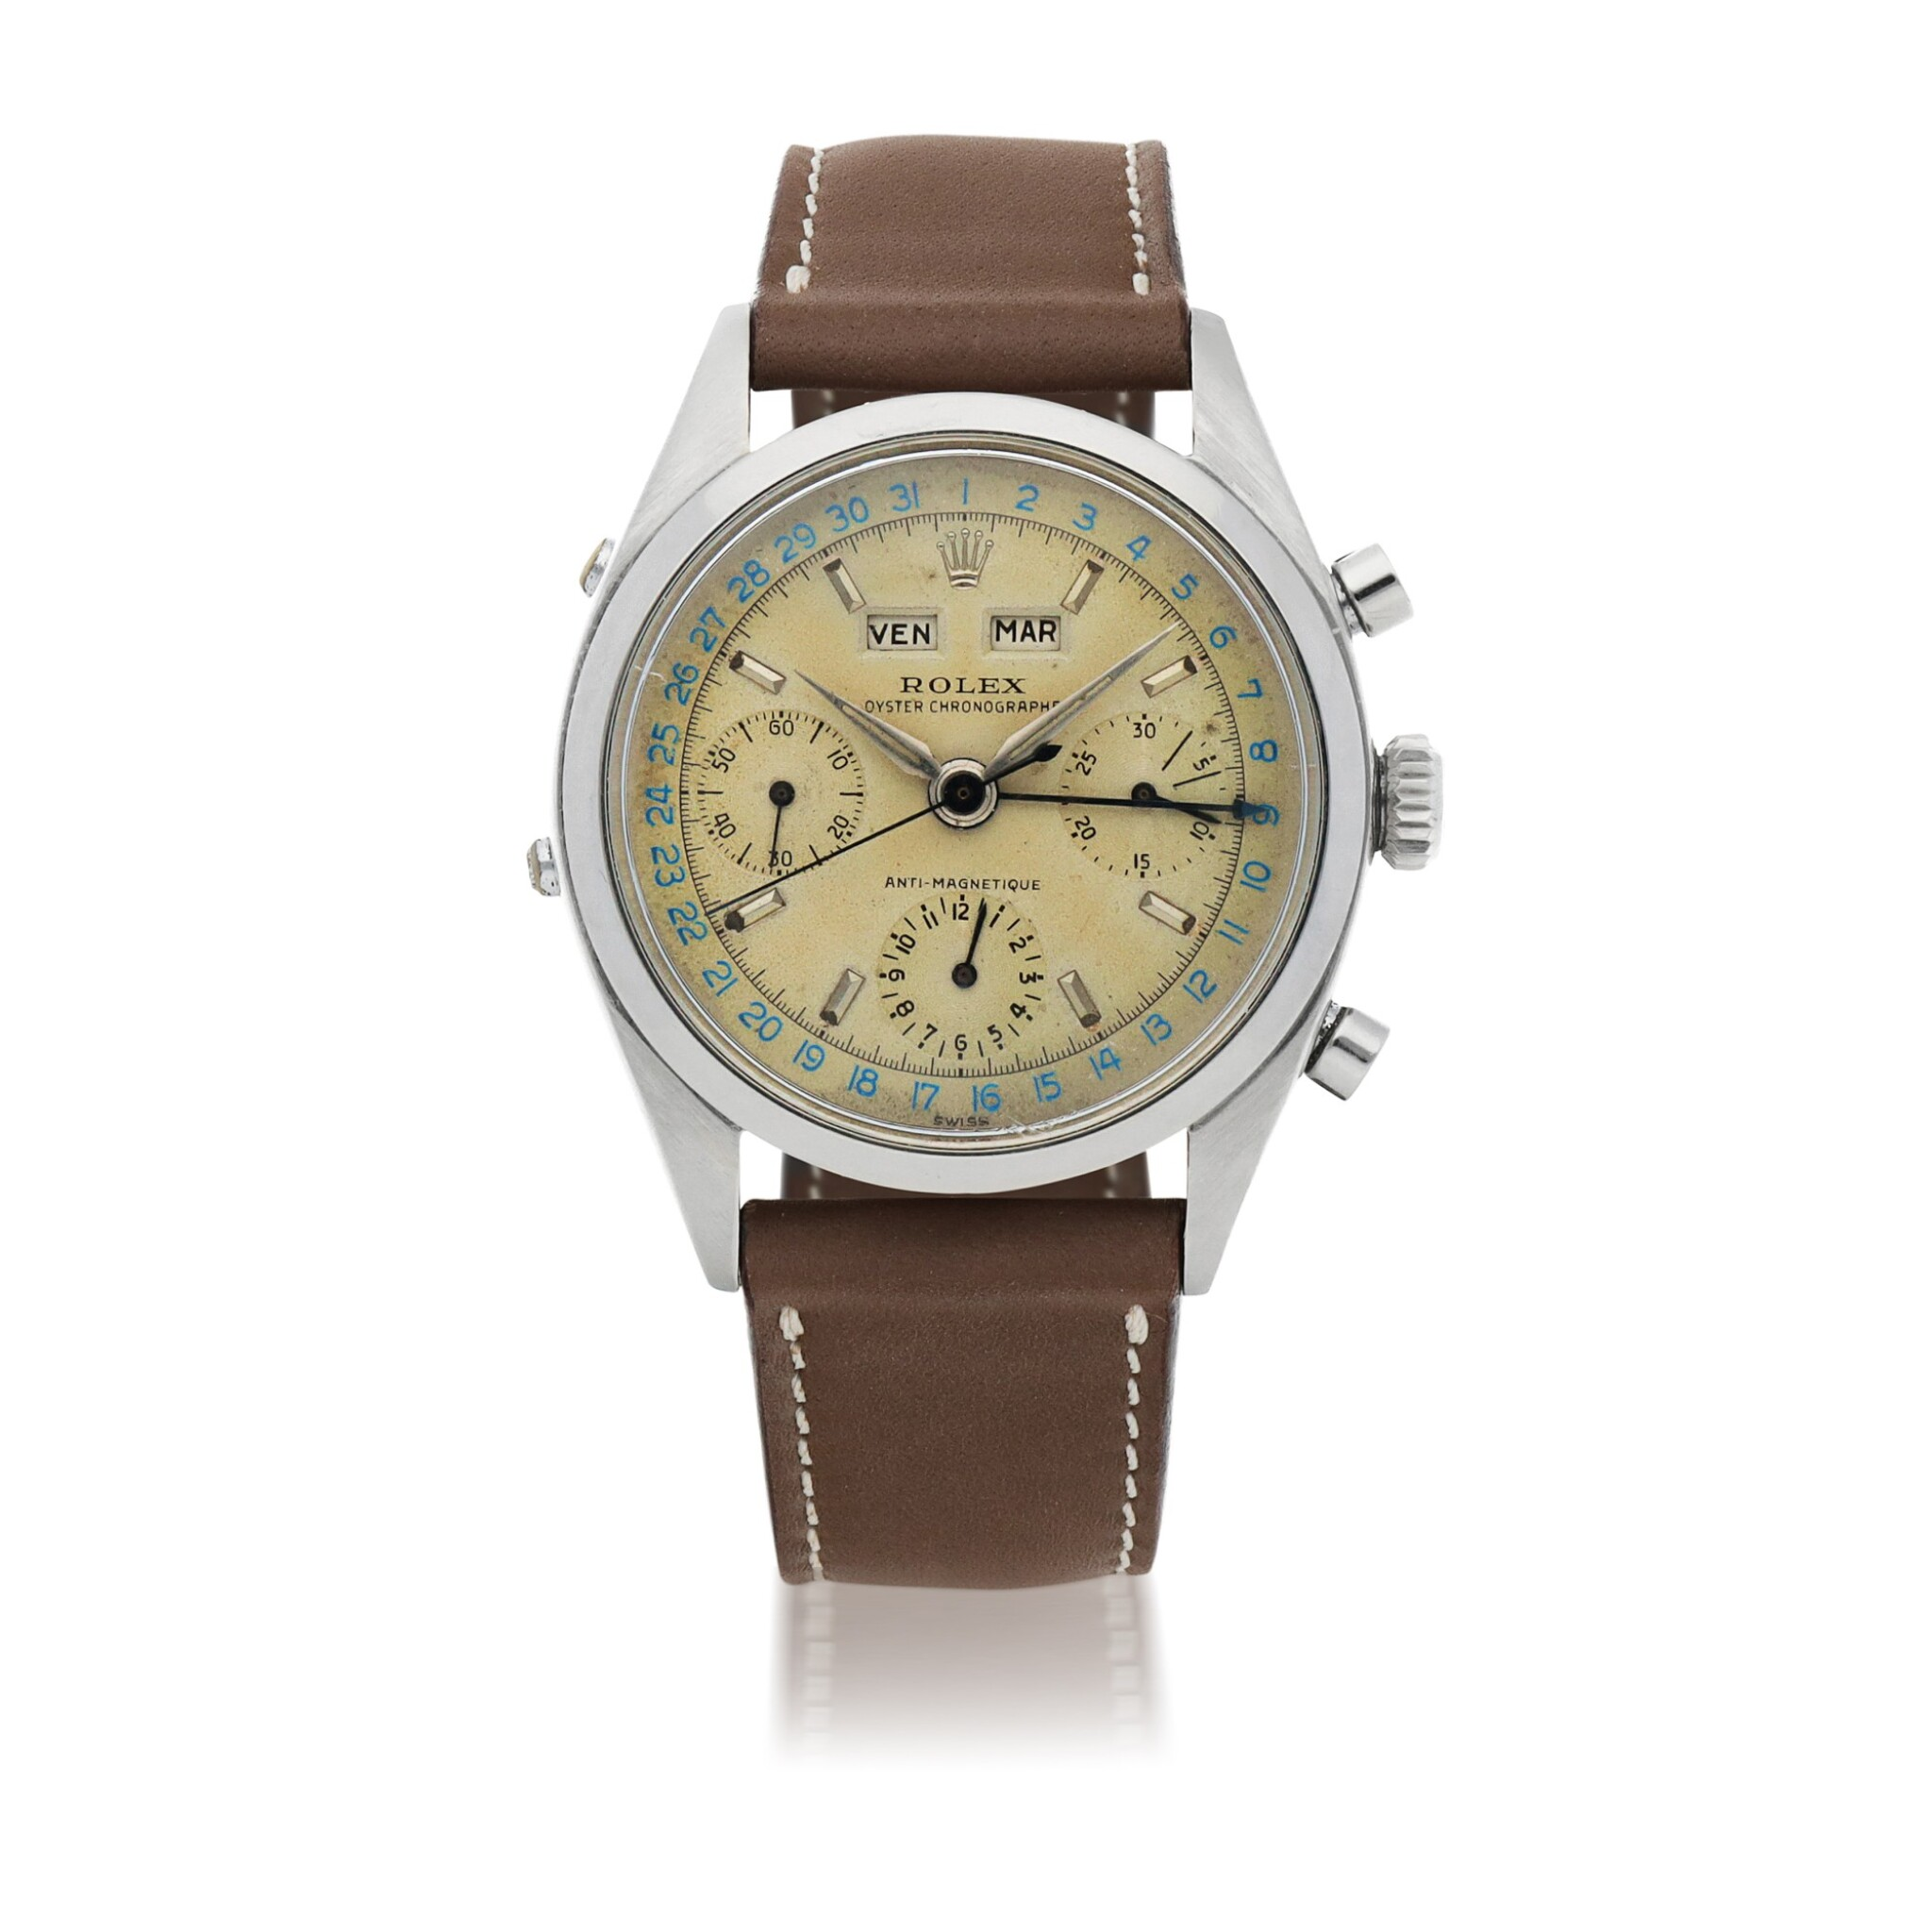 View full screen - View 1 of Lot 18. 'JEAN-CLAUDE KILLY' DATO-COMPAX, REF 6236 STAINLESS STEEL TRIPLE CALENDAR CHRONOGRAPH WRISTWATCH CIRCA 1958 [勞力士6236型號「'JEAN-CLAUDE KILLY' DATO-COMPAX」精鋼全日曆計時腕錶,年份約1958].